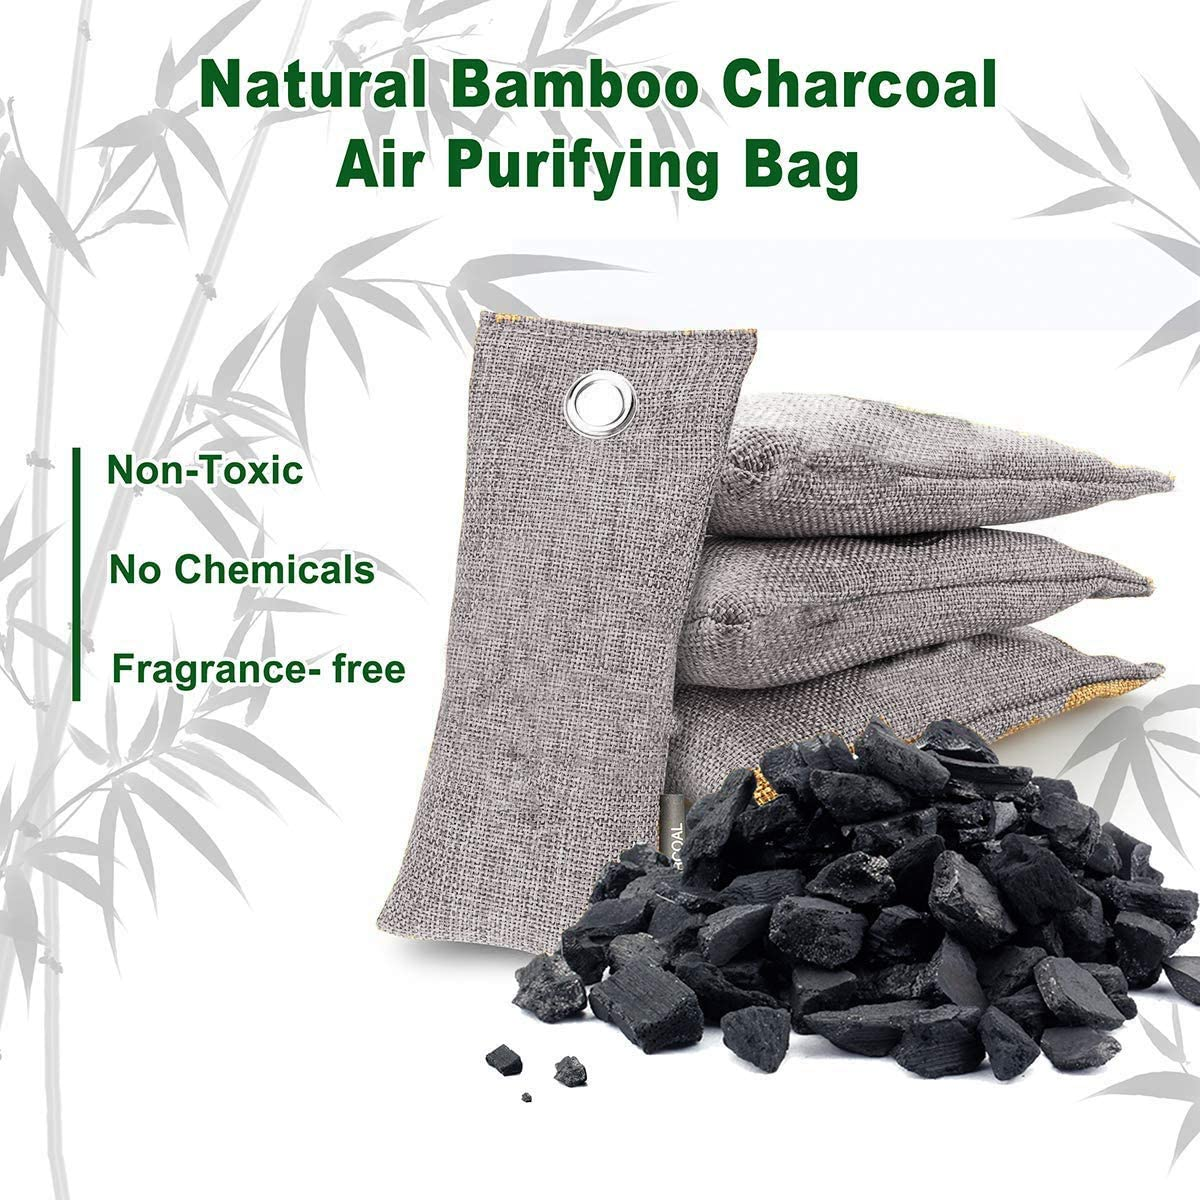 Allucky Air Purifying Bamboo Charcoal Bags Odour Absorber Air Freshener Hanging Pouches for Shoes, Home,Kitchen and Cars Set of 4 (100g/bag 4pack) 75g/Bag 4pack